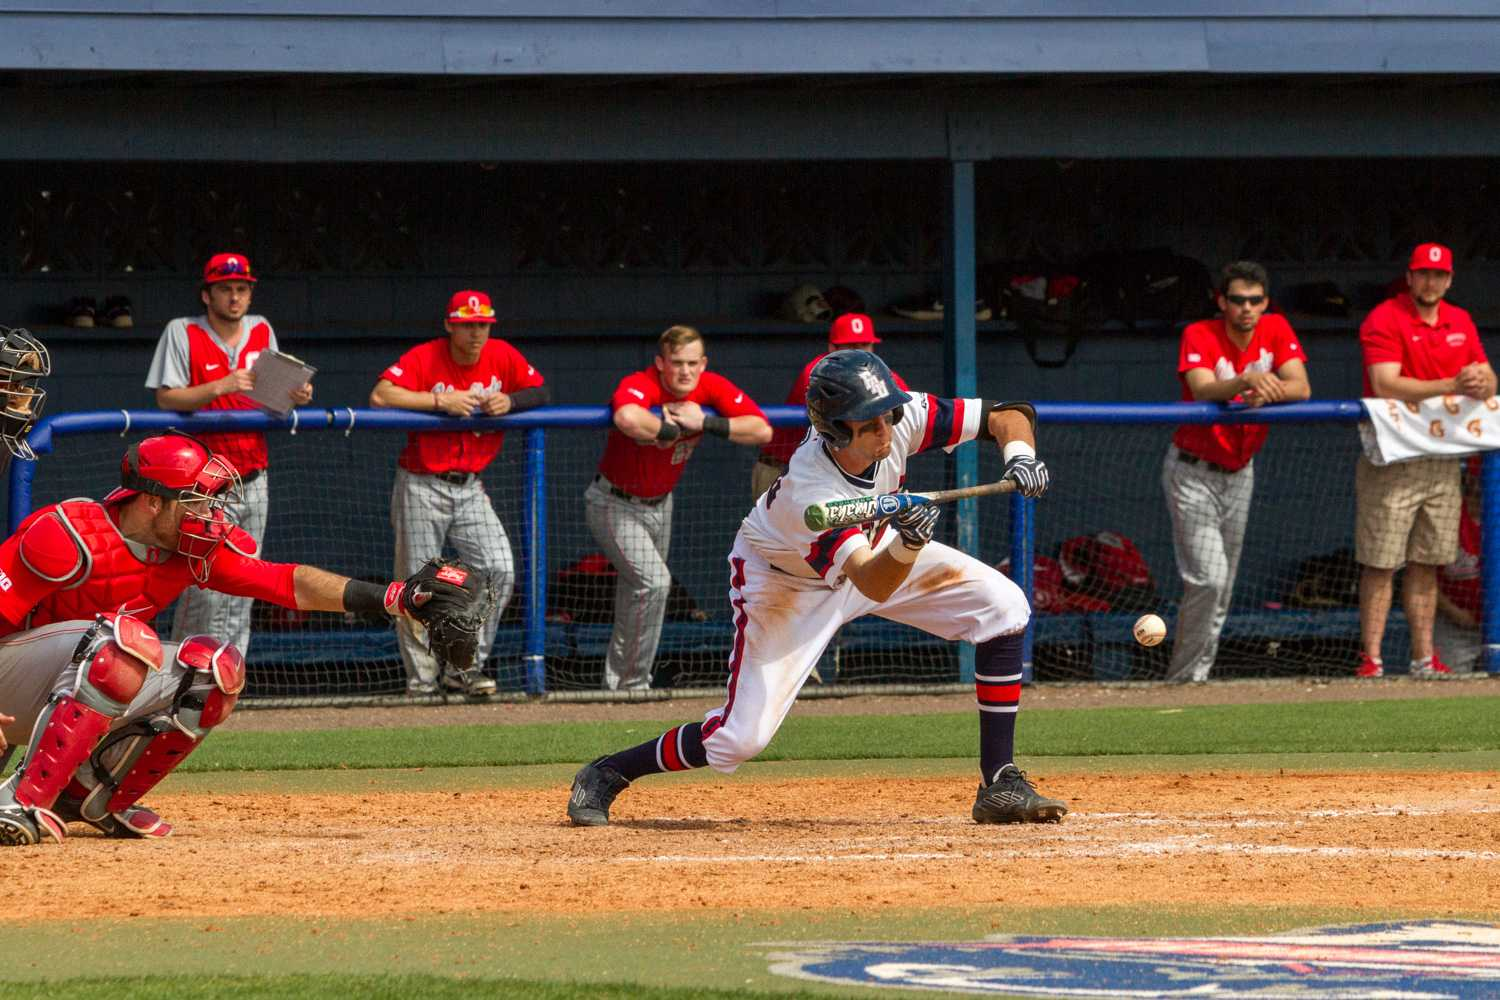 Sophomore CJ Chatham (10) squares to bunt. He had a hit in two at-bats.